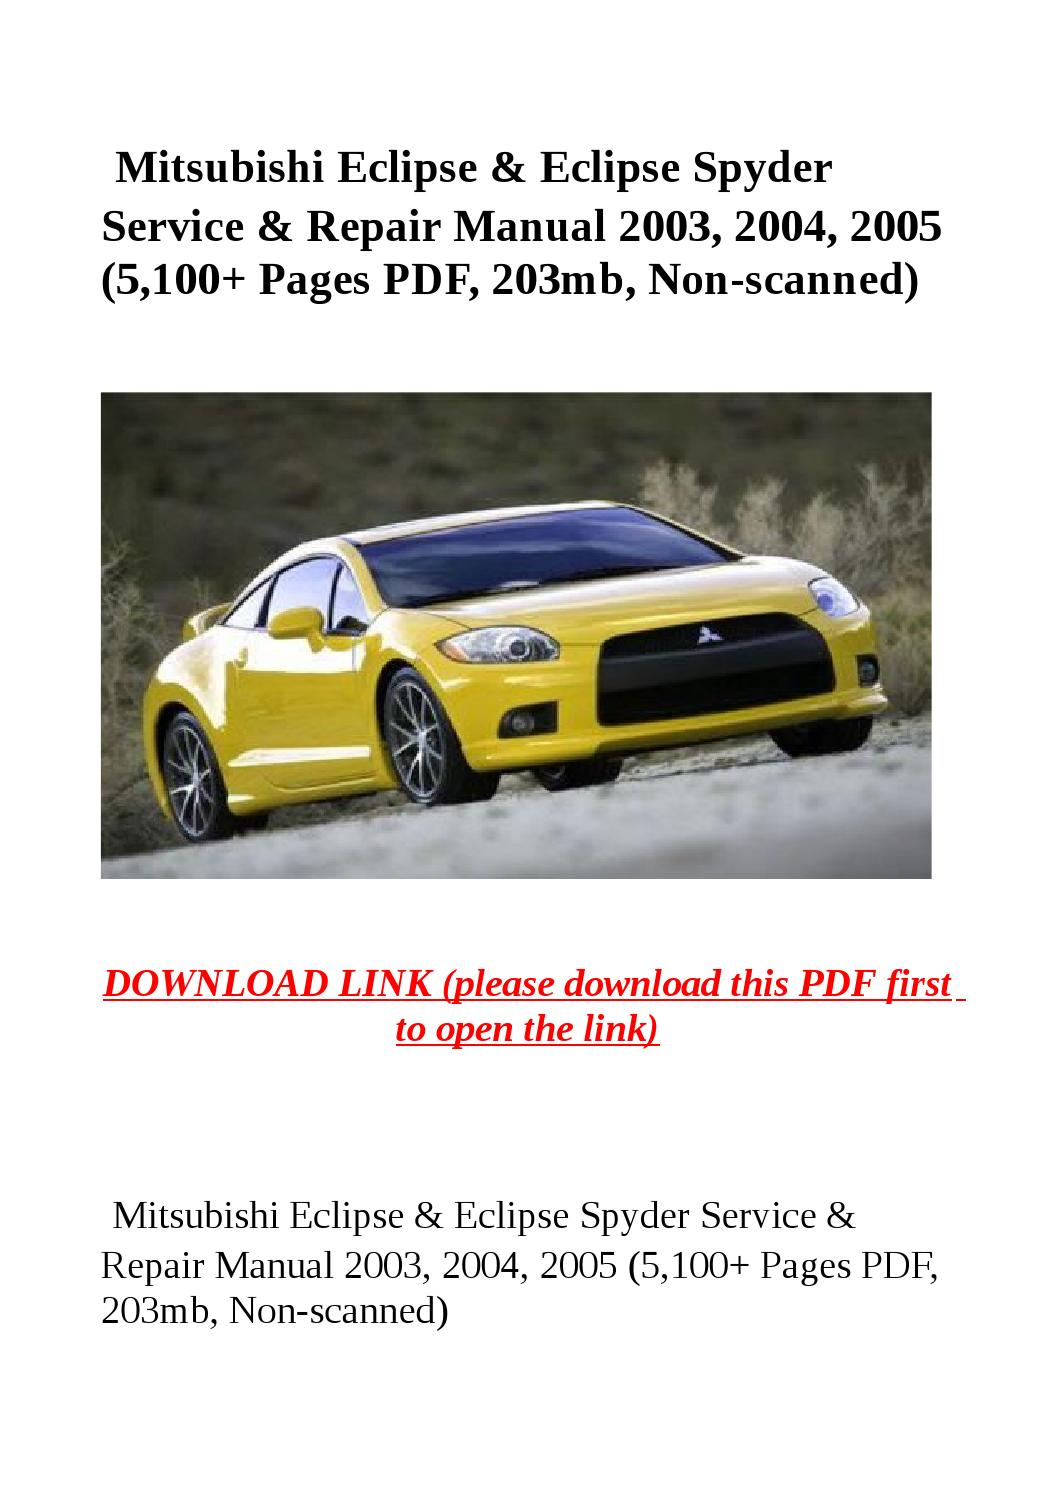 Mitsubishi eclipse & eclipse spyder service & repair manual 2003, 2004, 2005  (5,100 pages pdf, 203mb by dale - issuu